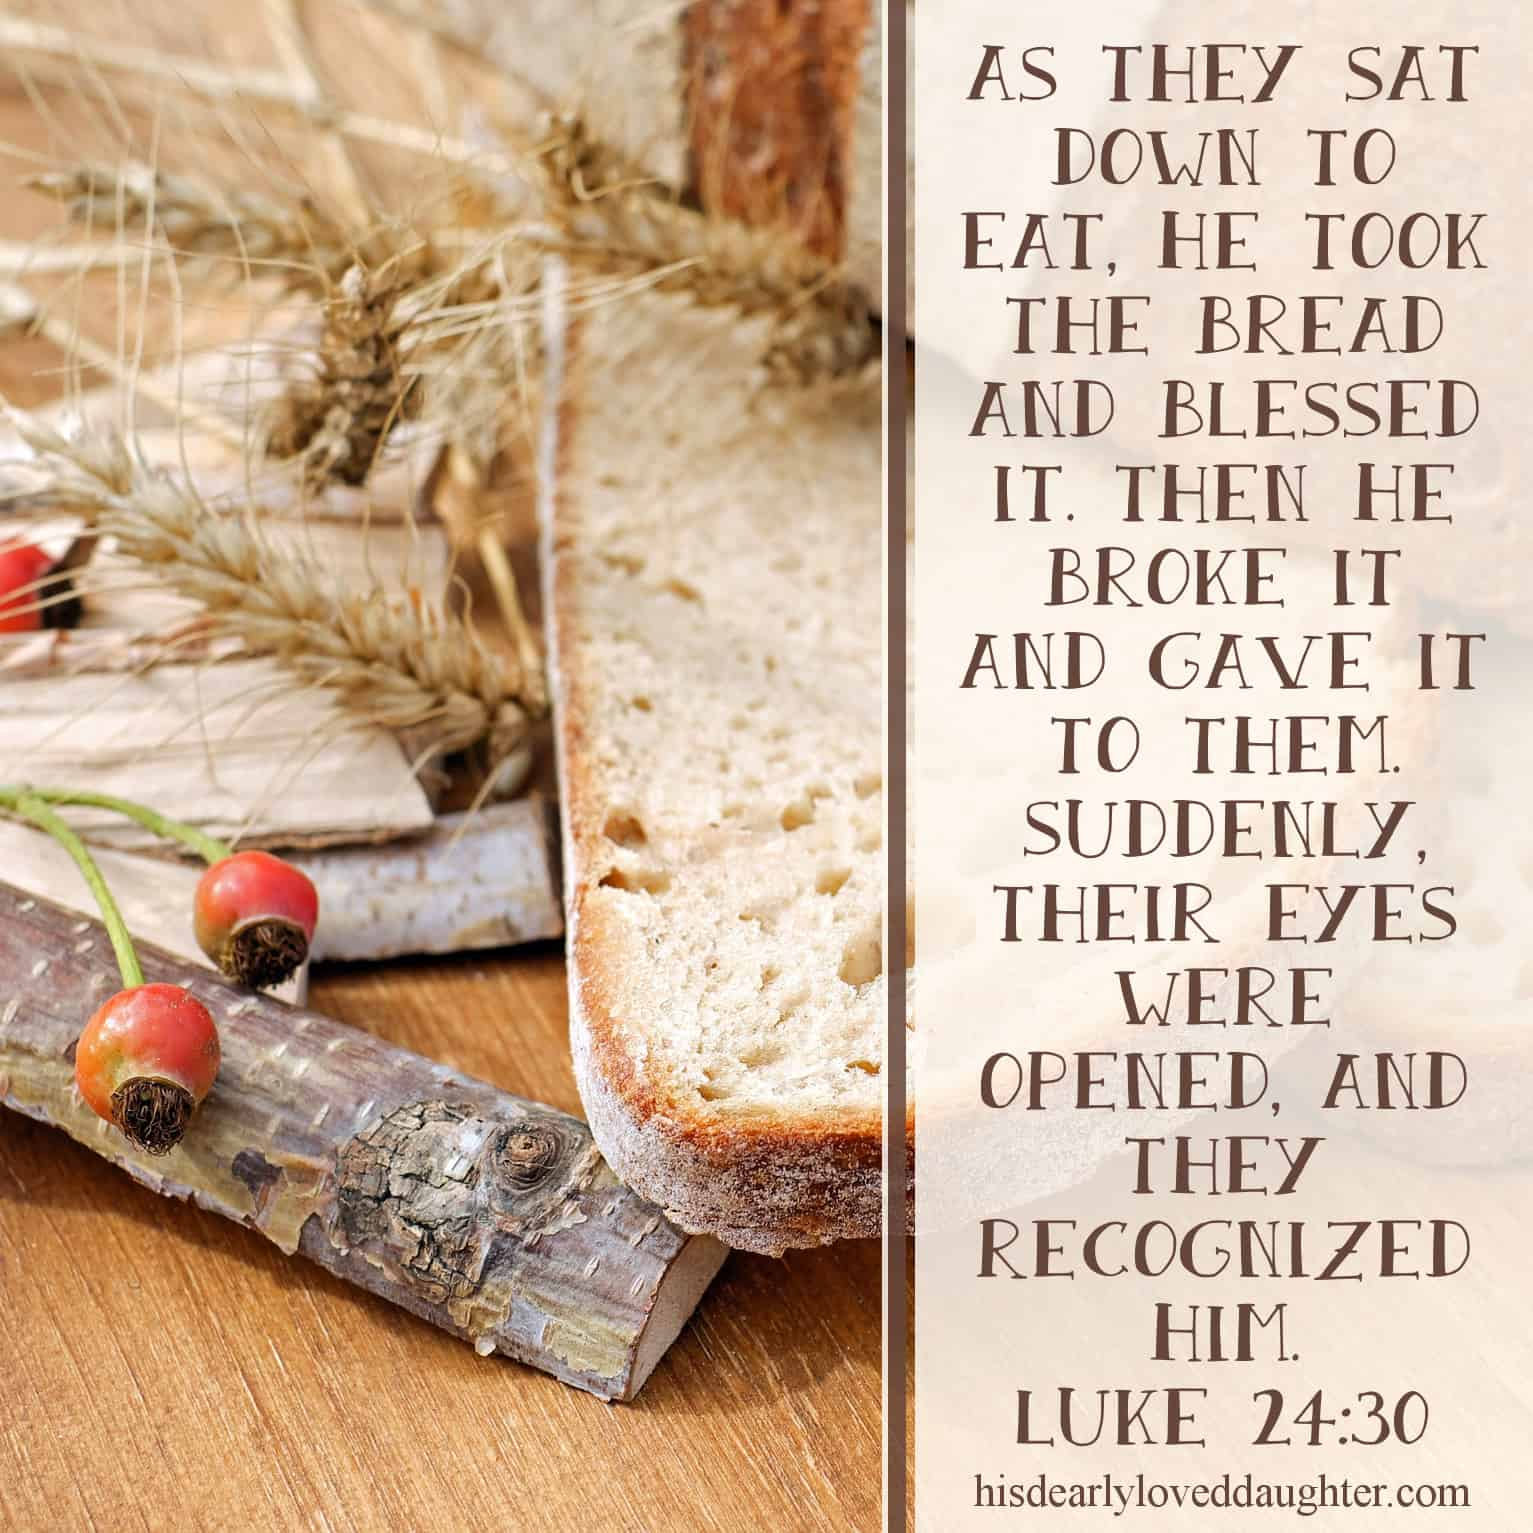 As they sat down to eat, He took the bread and blessed it. Then He broke it and gave it to them. Suddenly, their eyes were opened, and they recognized Him. Luke 24:30-31